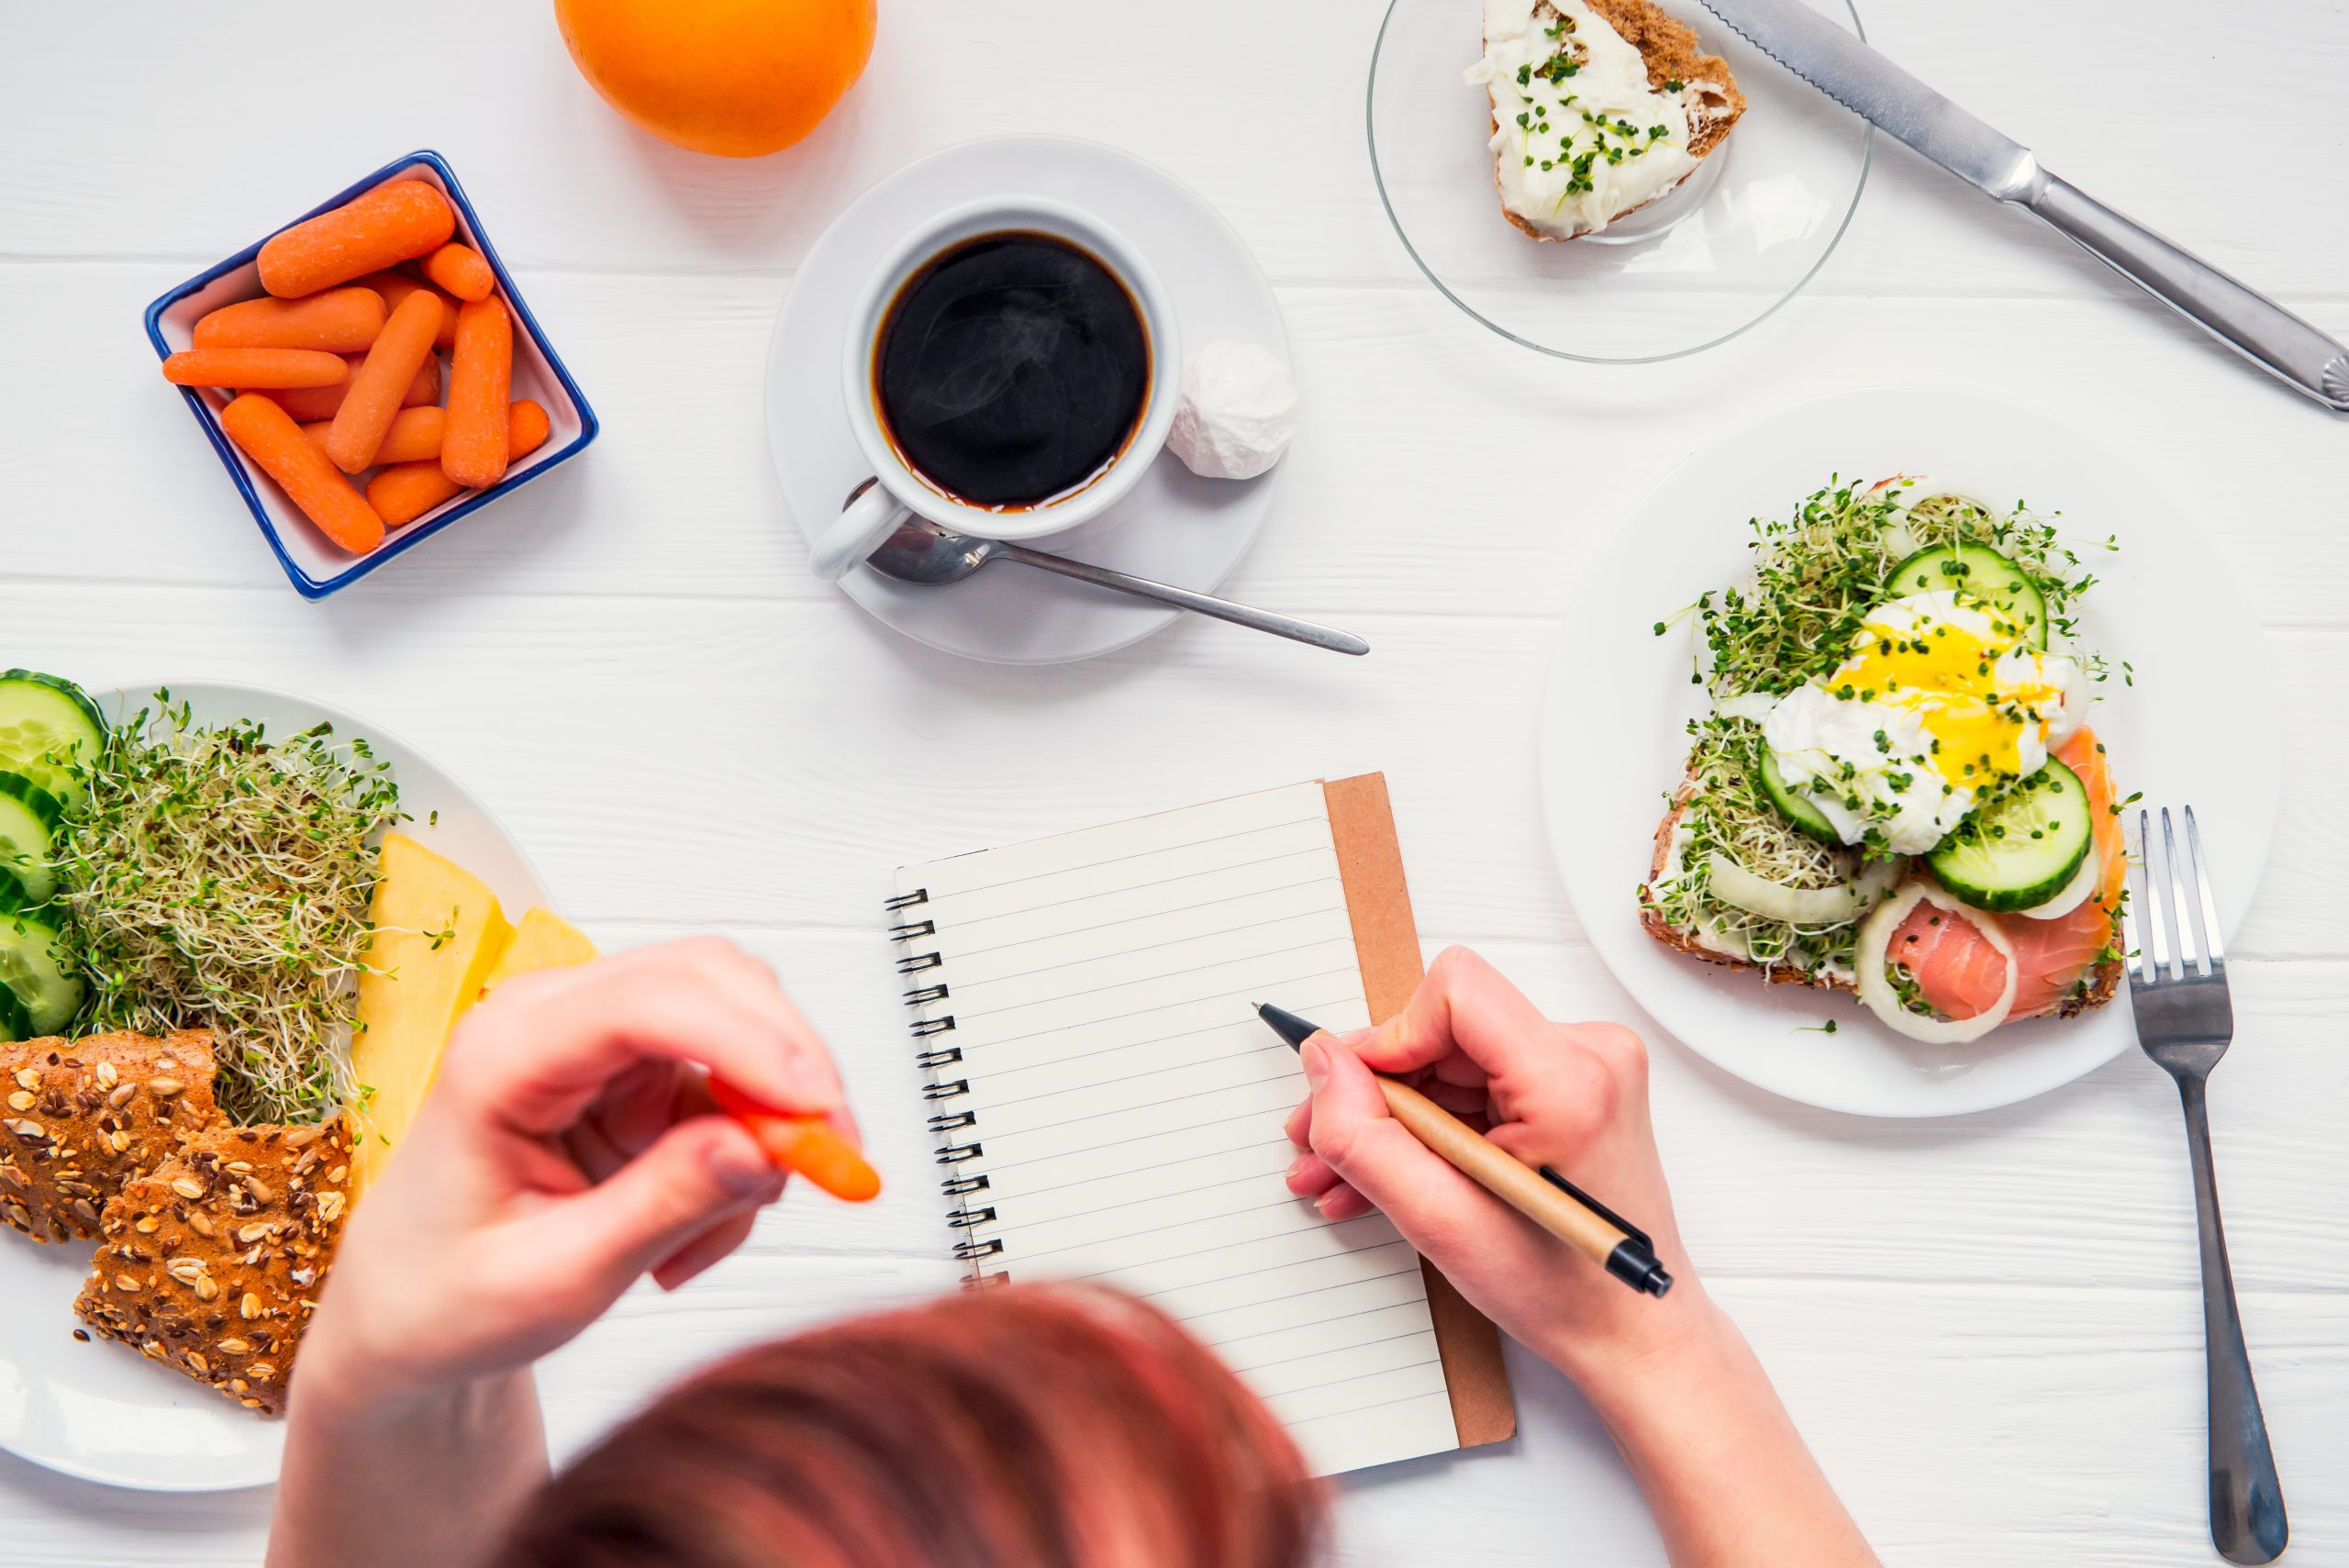 Top down view of woman writing in her journal as she eats from the plates of food around her. Equipoise Teletherapy offers medicial nutrition therapy in chicago, il, intuitive eating counseling in chicago, il, and more.